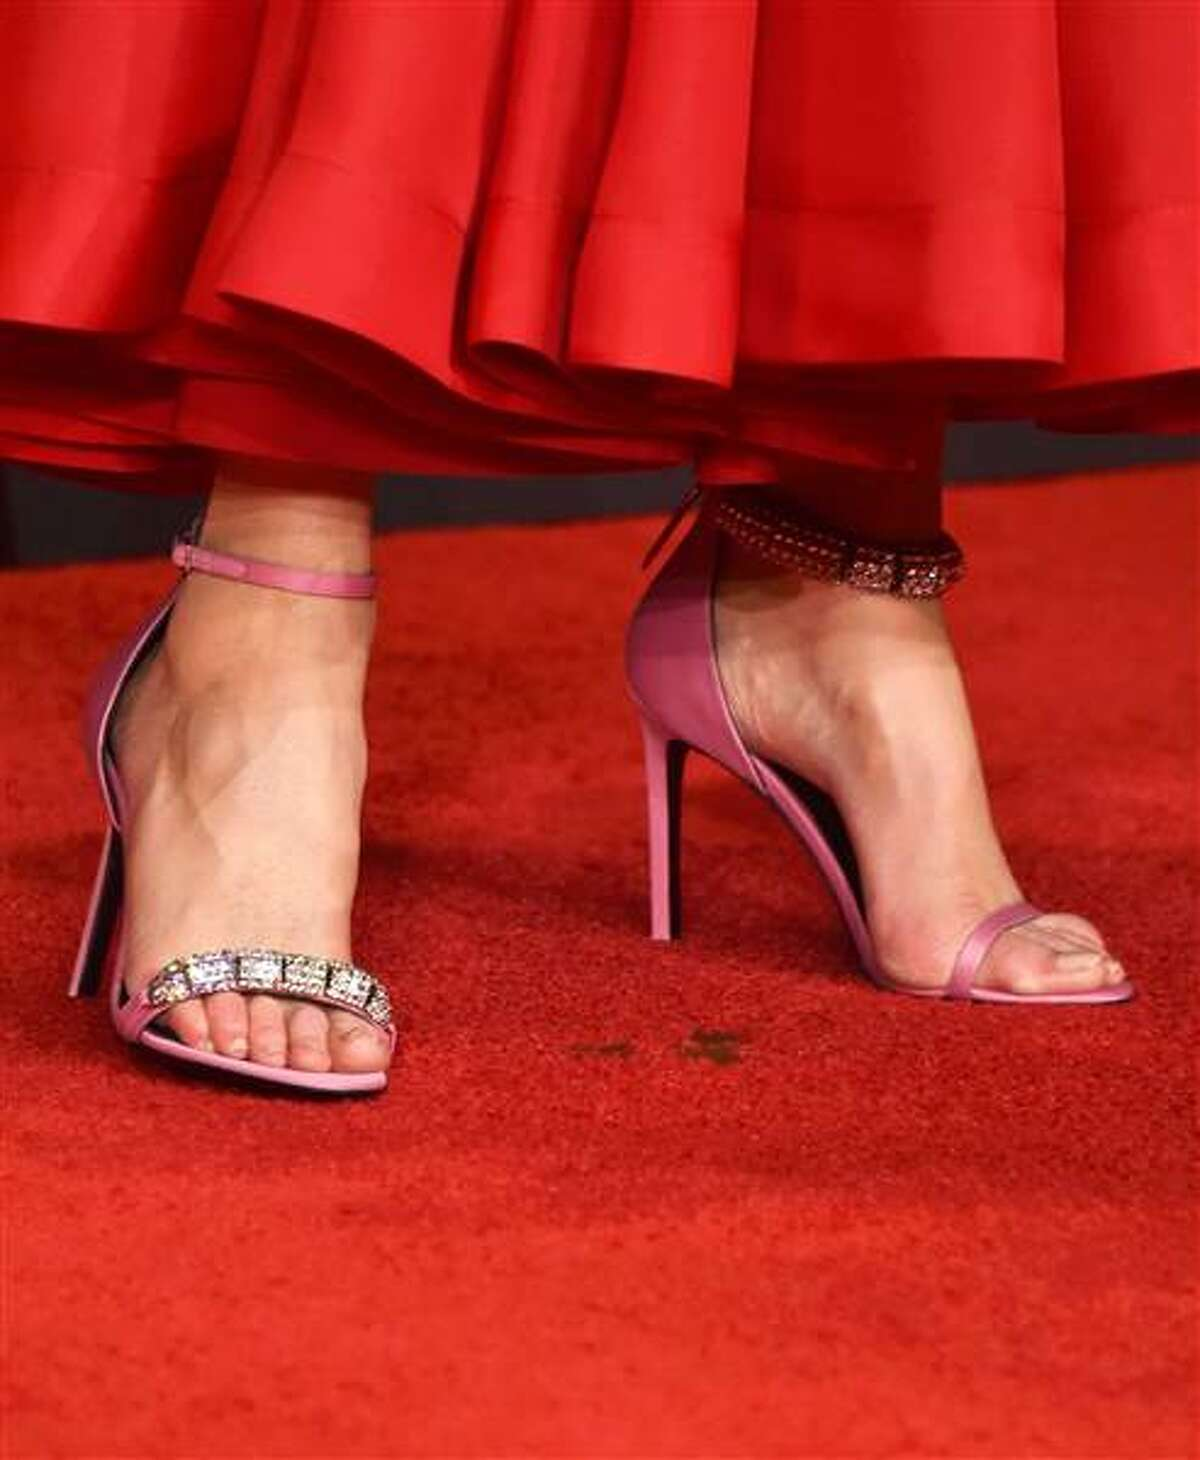 Nicole Kidman wore a mismatched pair of Calvin Klein sandals to contrast her red Calvin Klein dress at the recent Emmys.